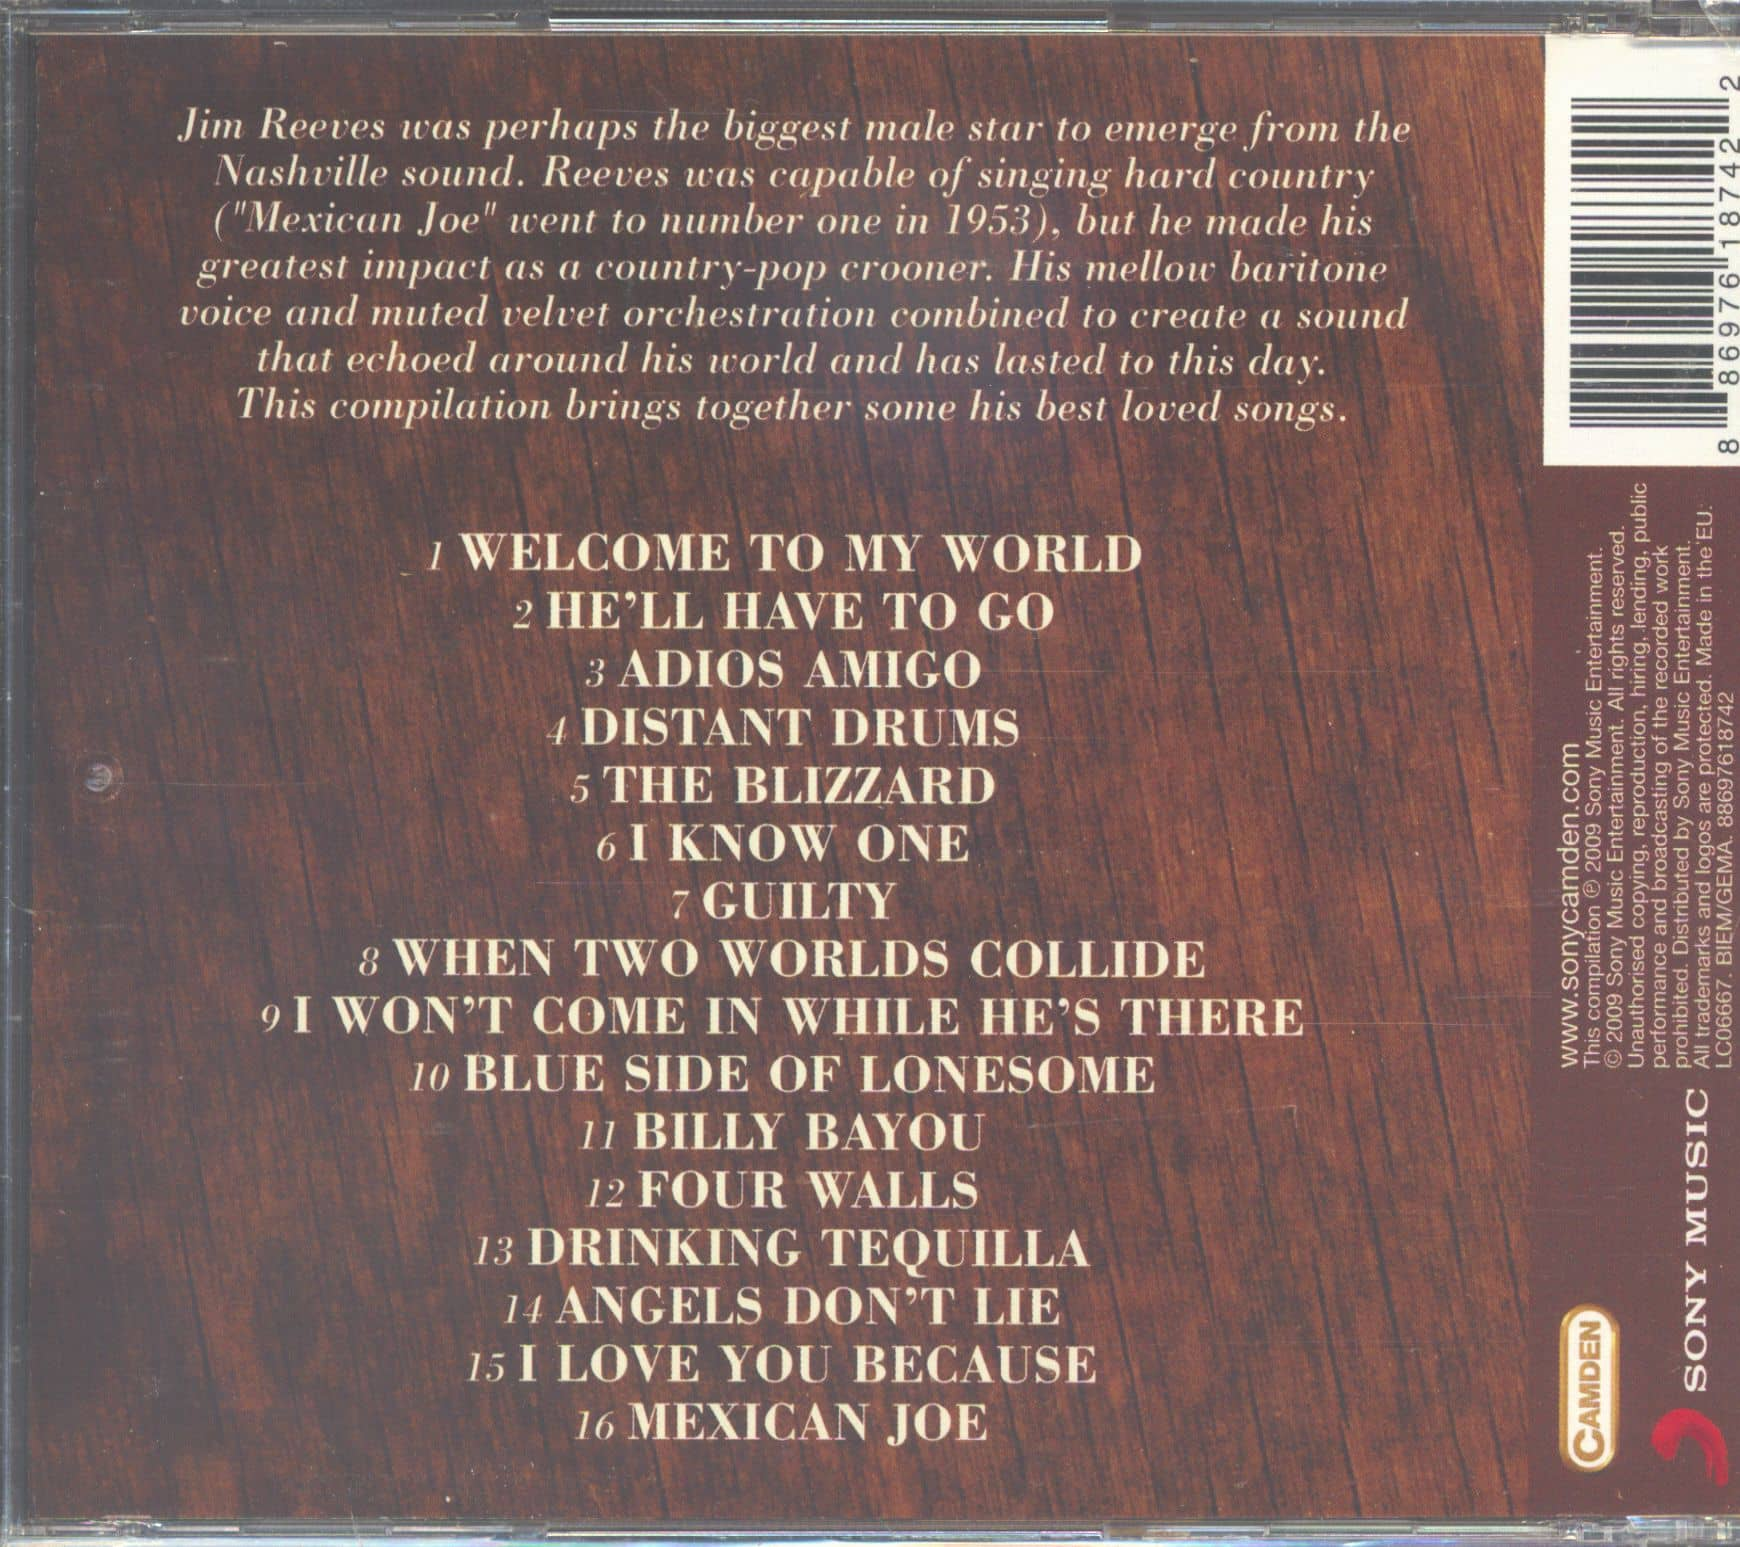 Jim Reeves CD: Welcome To My World - The Best Of Jim Reeves